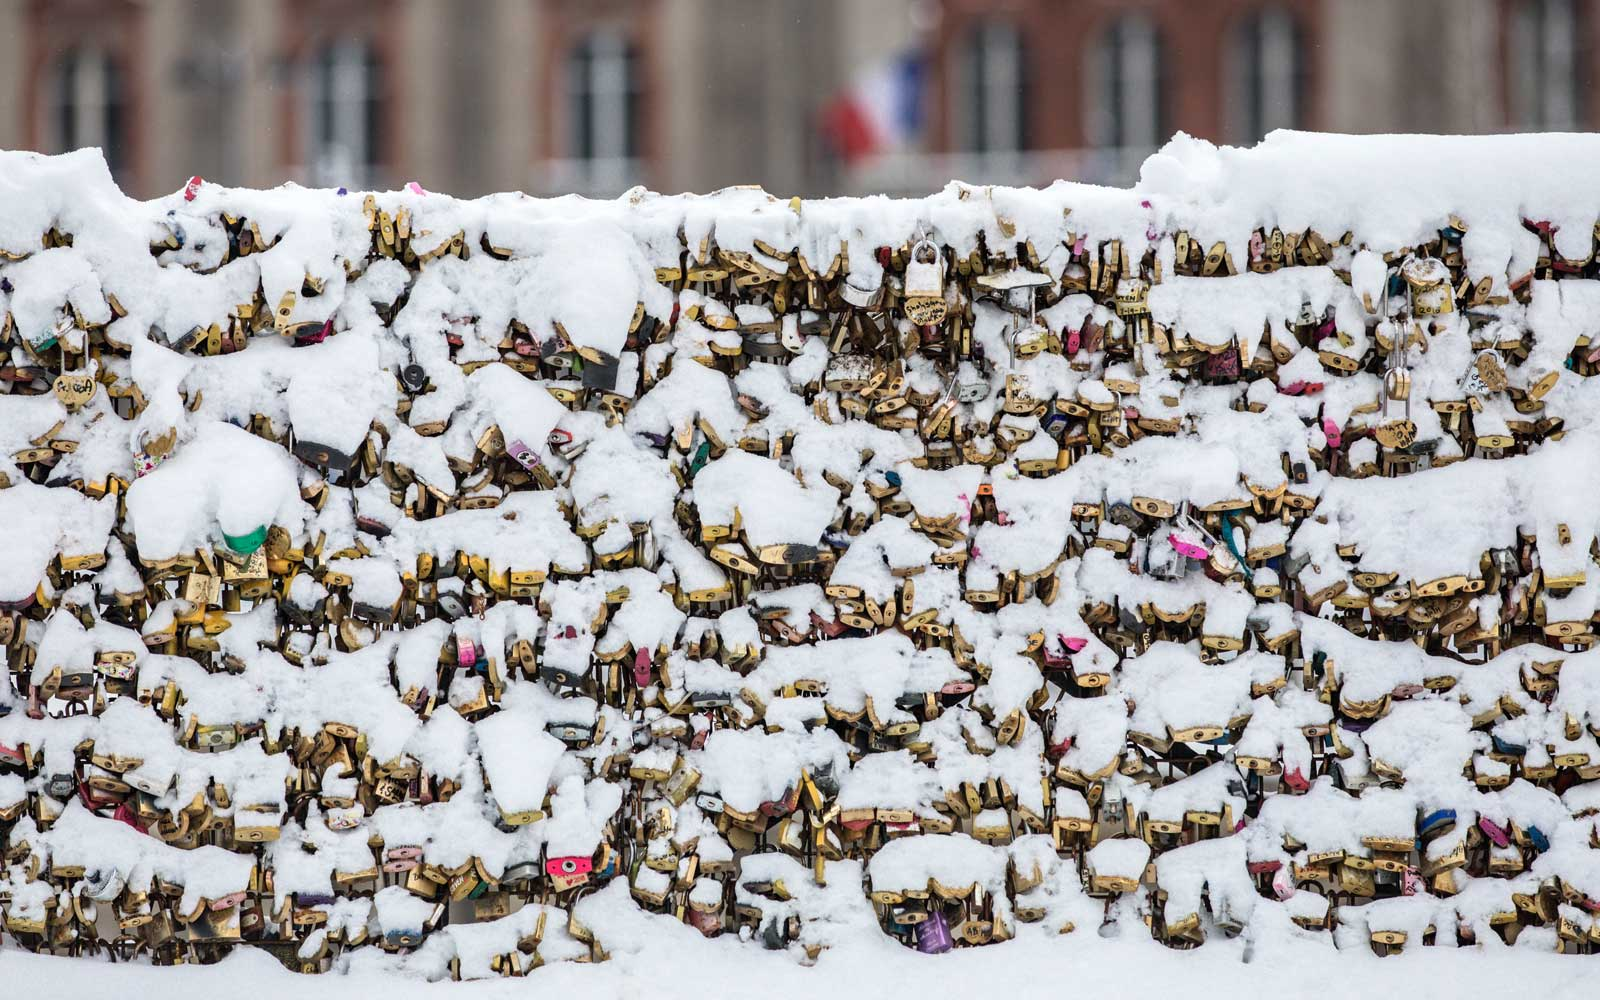 Paris Love Locks covered in snow